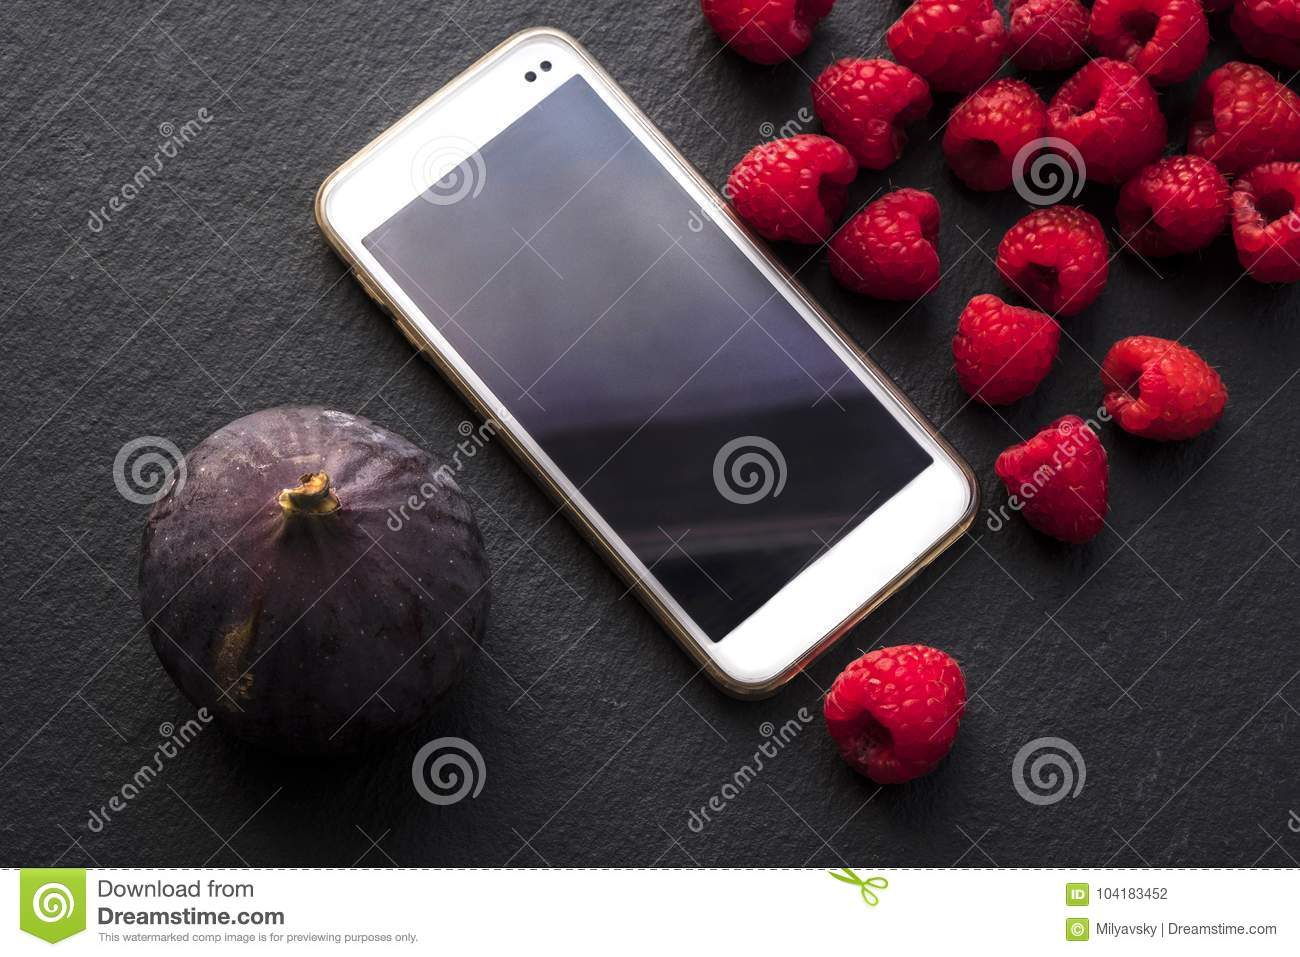 Raspberries, figs and gadget on black shale